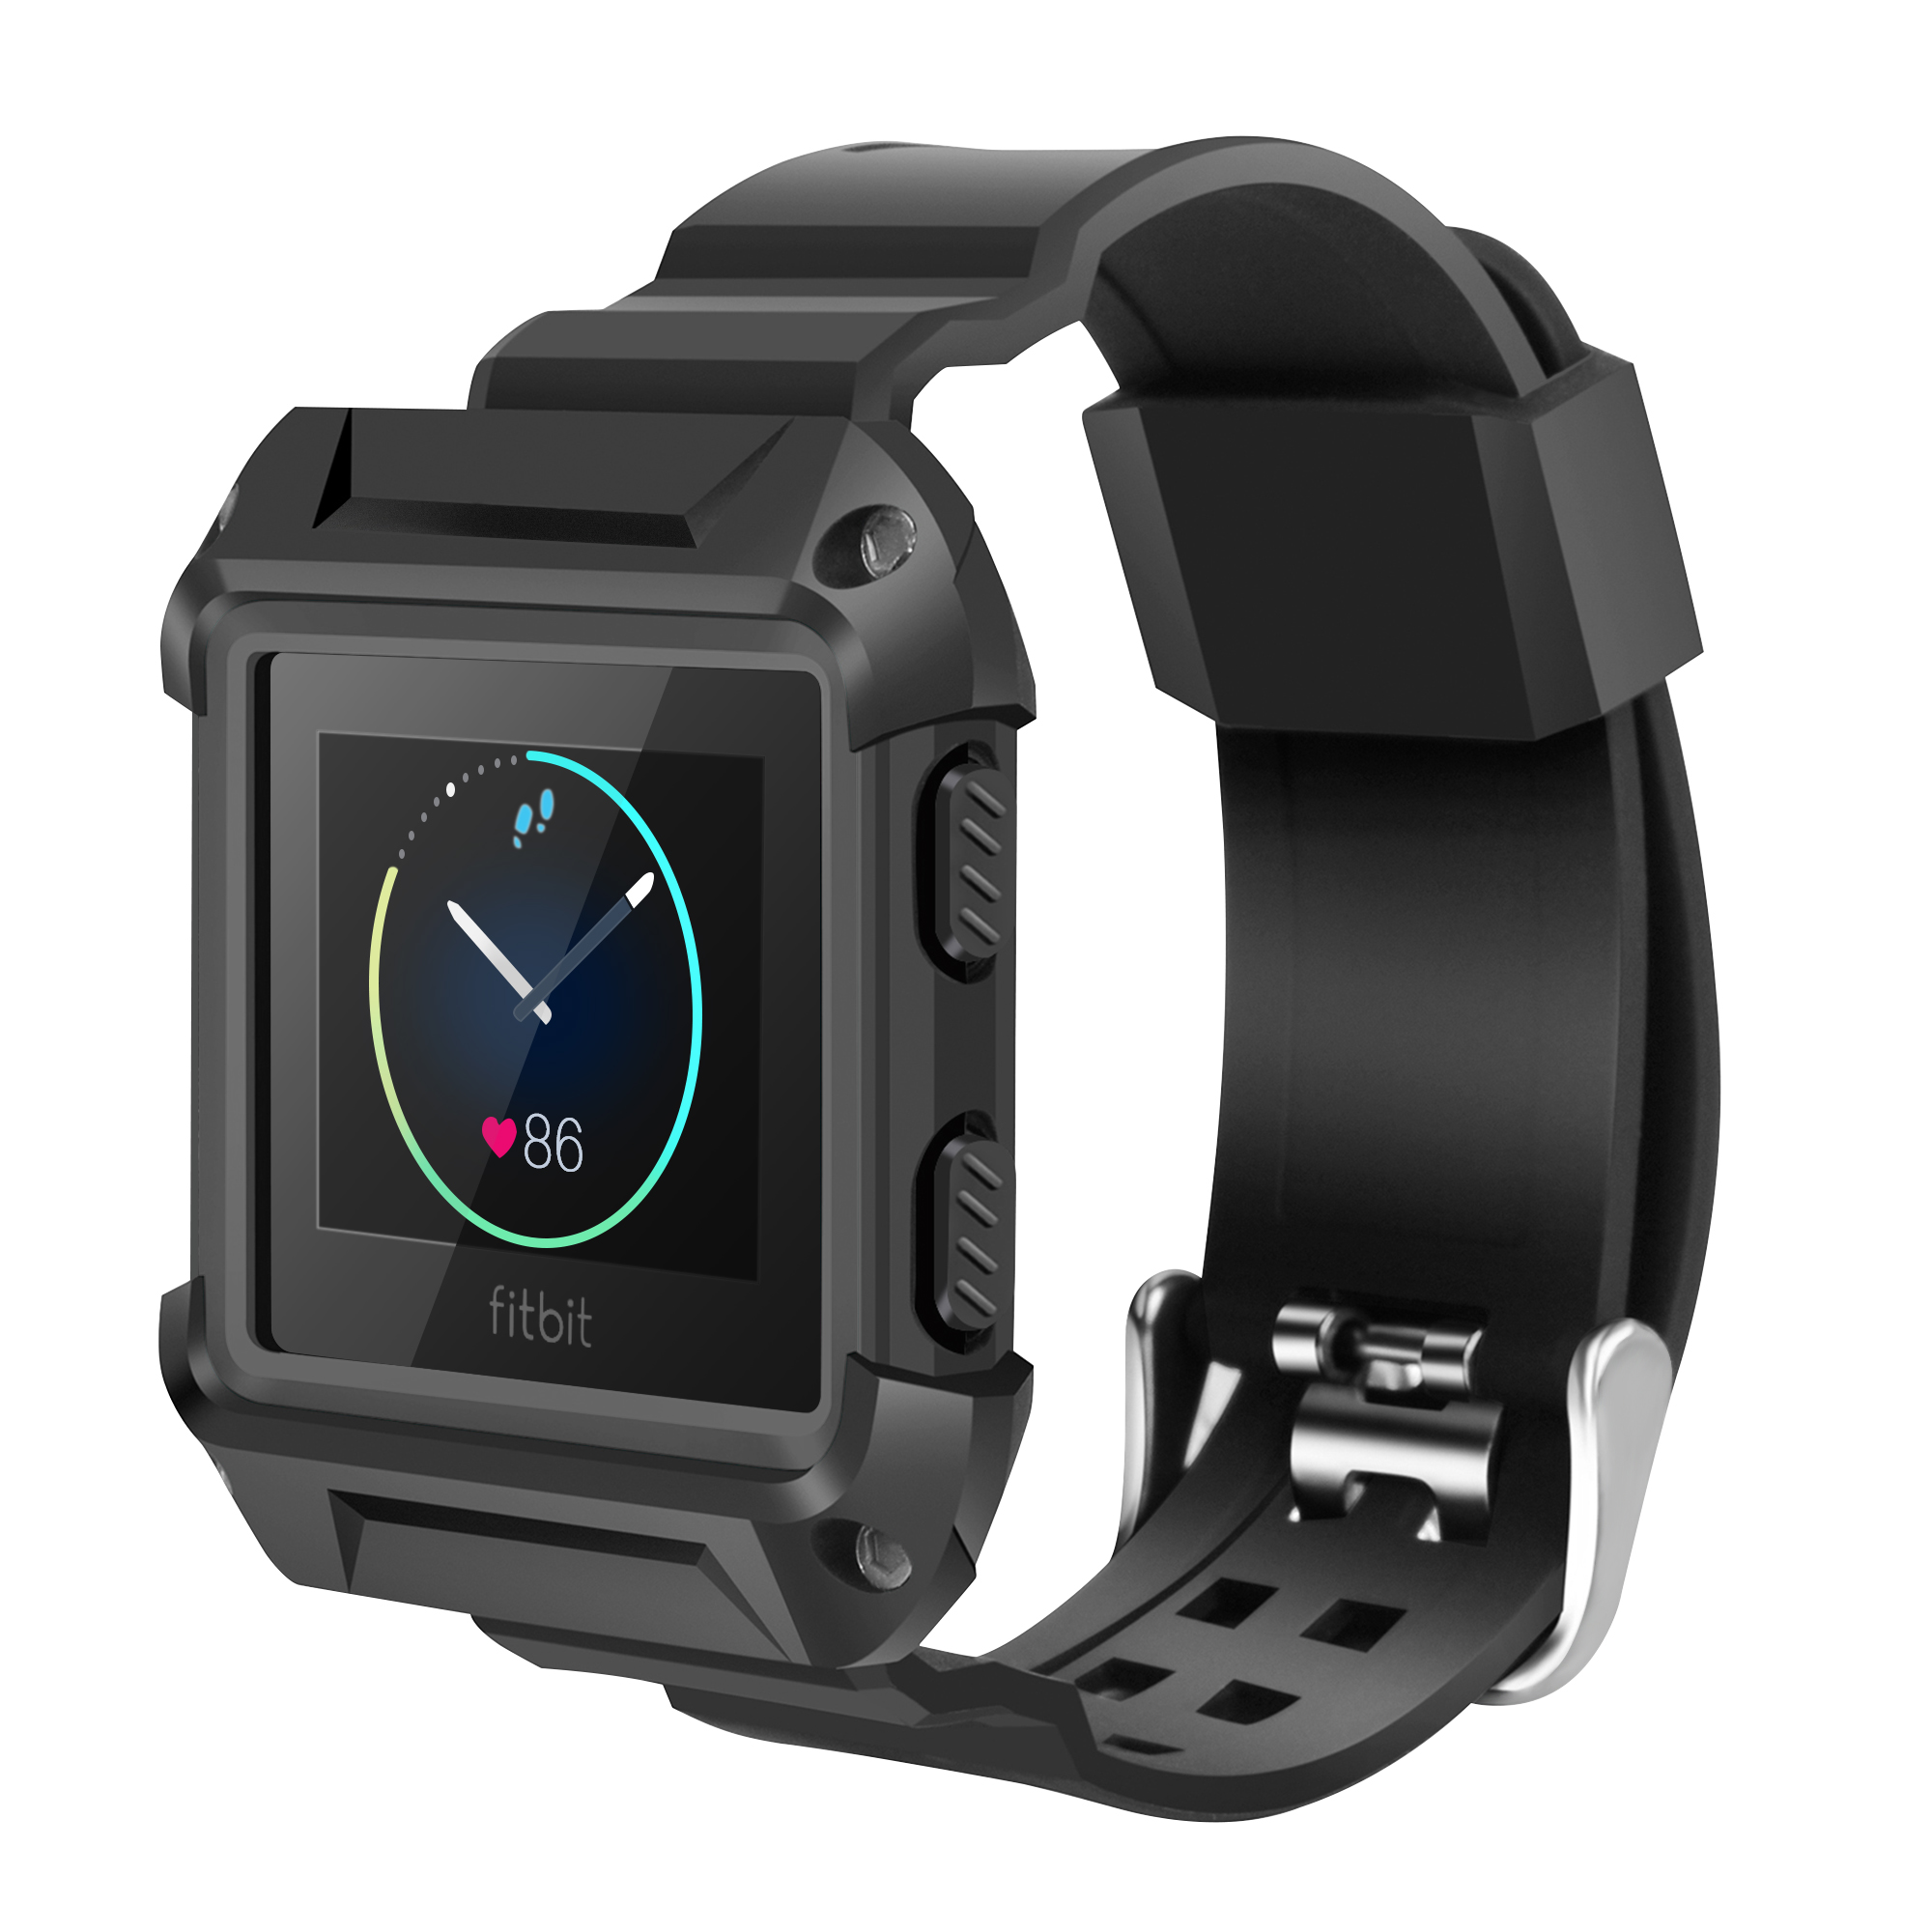 For Fitbit Blaze Bands with Protective Case, Rugged Case Strap Bands for Fitbit Blaze Fitness Smart Watch